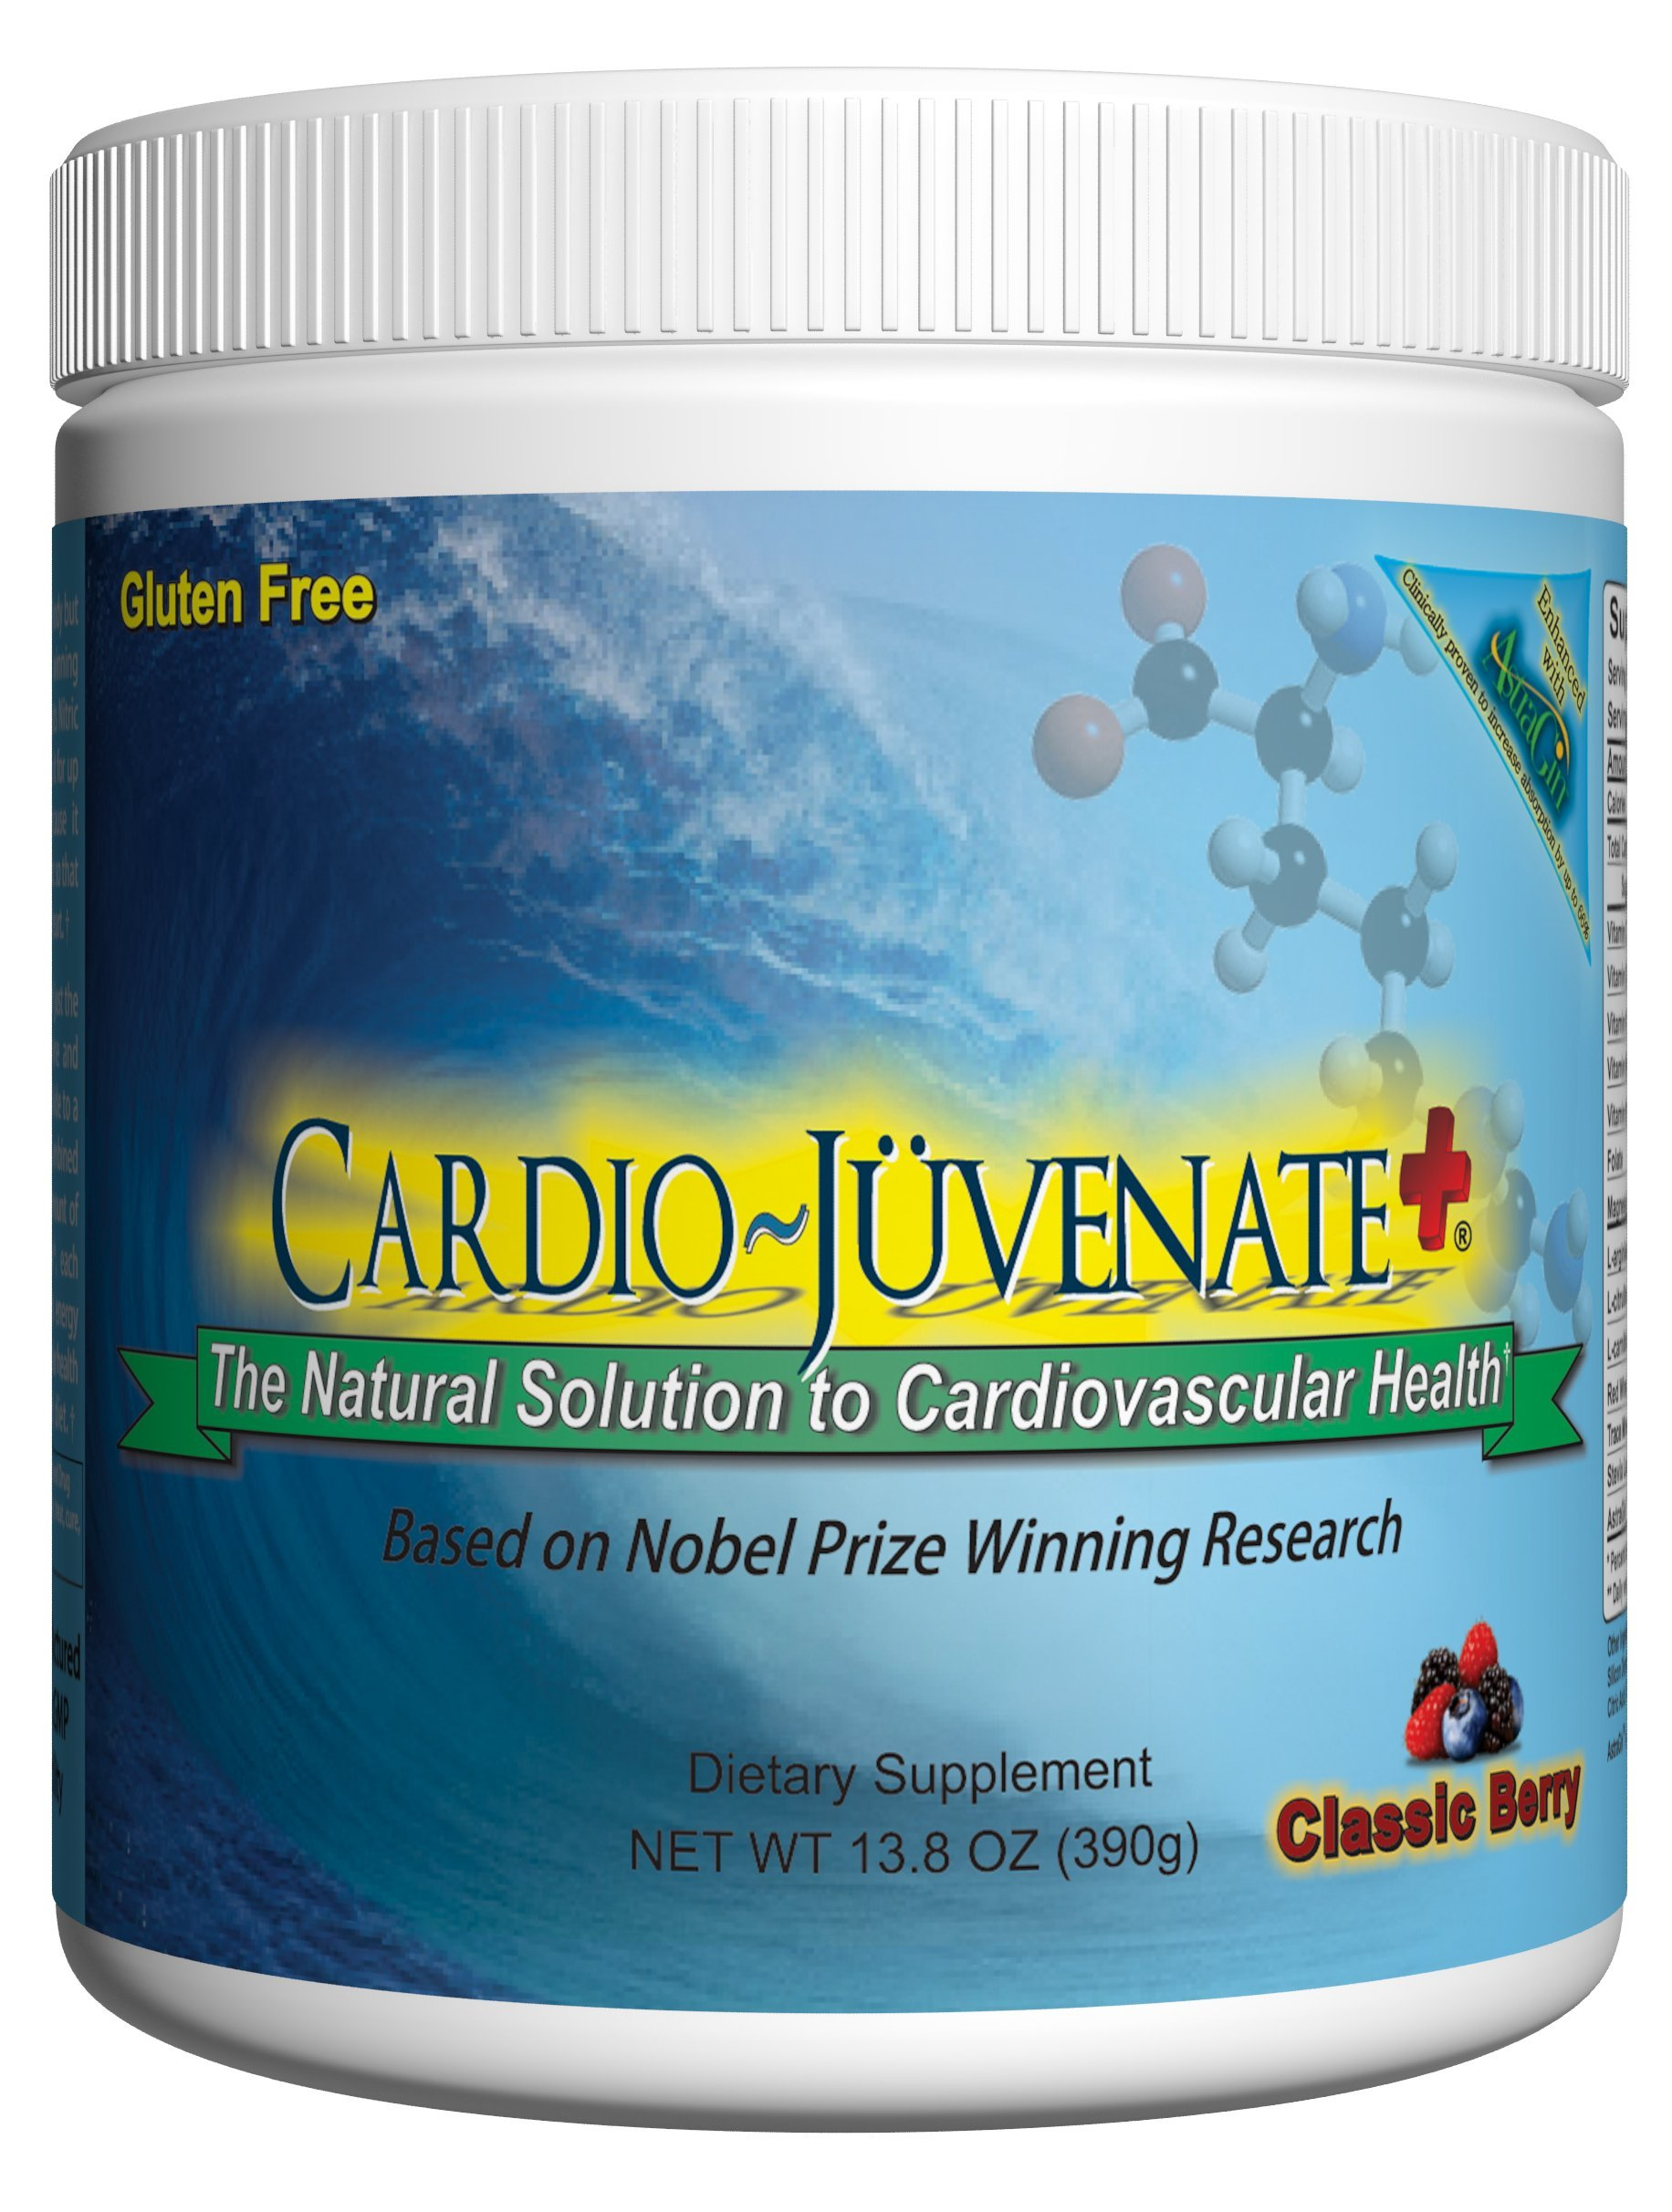 Cardio Juvenate Plus Classic Berry Cardio Health Formula: Nitric Oxide Supplement 5000mg L-arginine, 1000mg L-citrulline, 1000mg L-carnitine per serving to support heart health and blood pressure by Cardio Juvenate